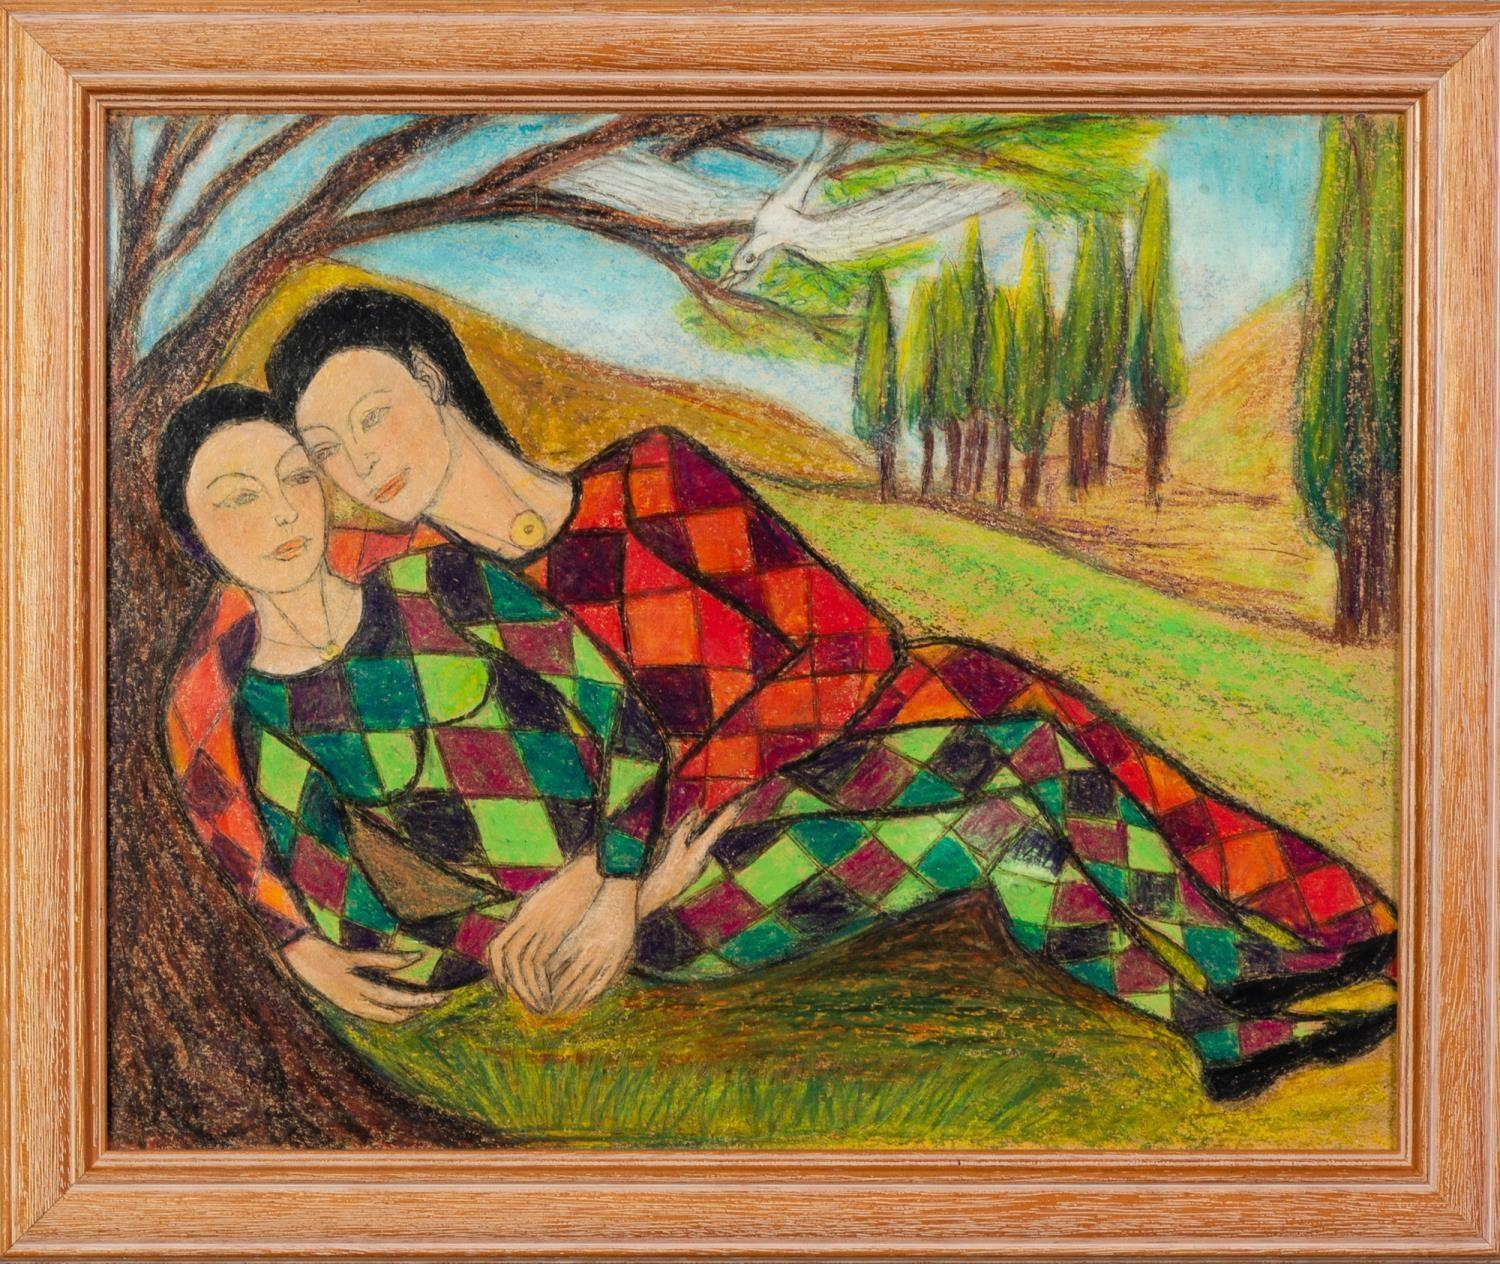 GOLDA ROSE (1921-2016) MIXED MEDIA ON BOARD Harlequin Lovers Unsigned 10 ½? x 13? (26.7cm x 33cm) - Image 2 of 2